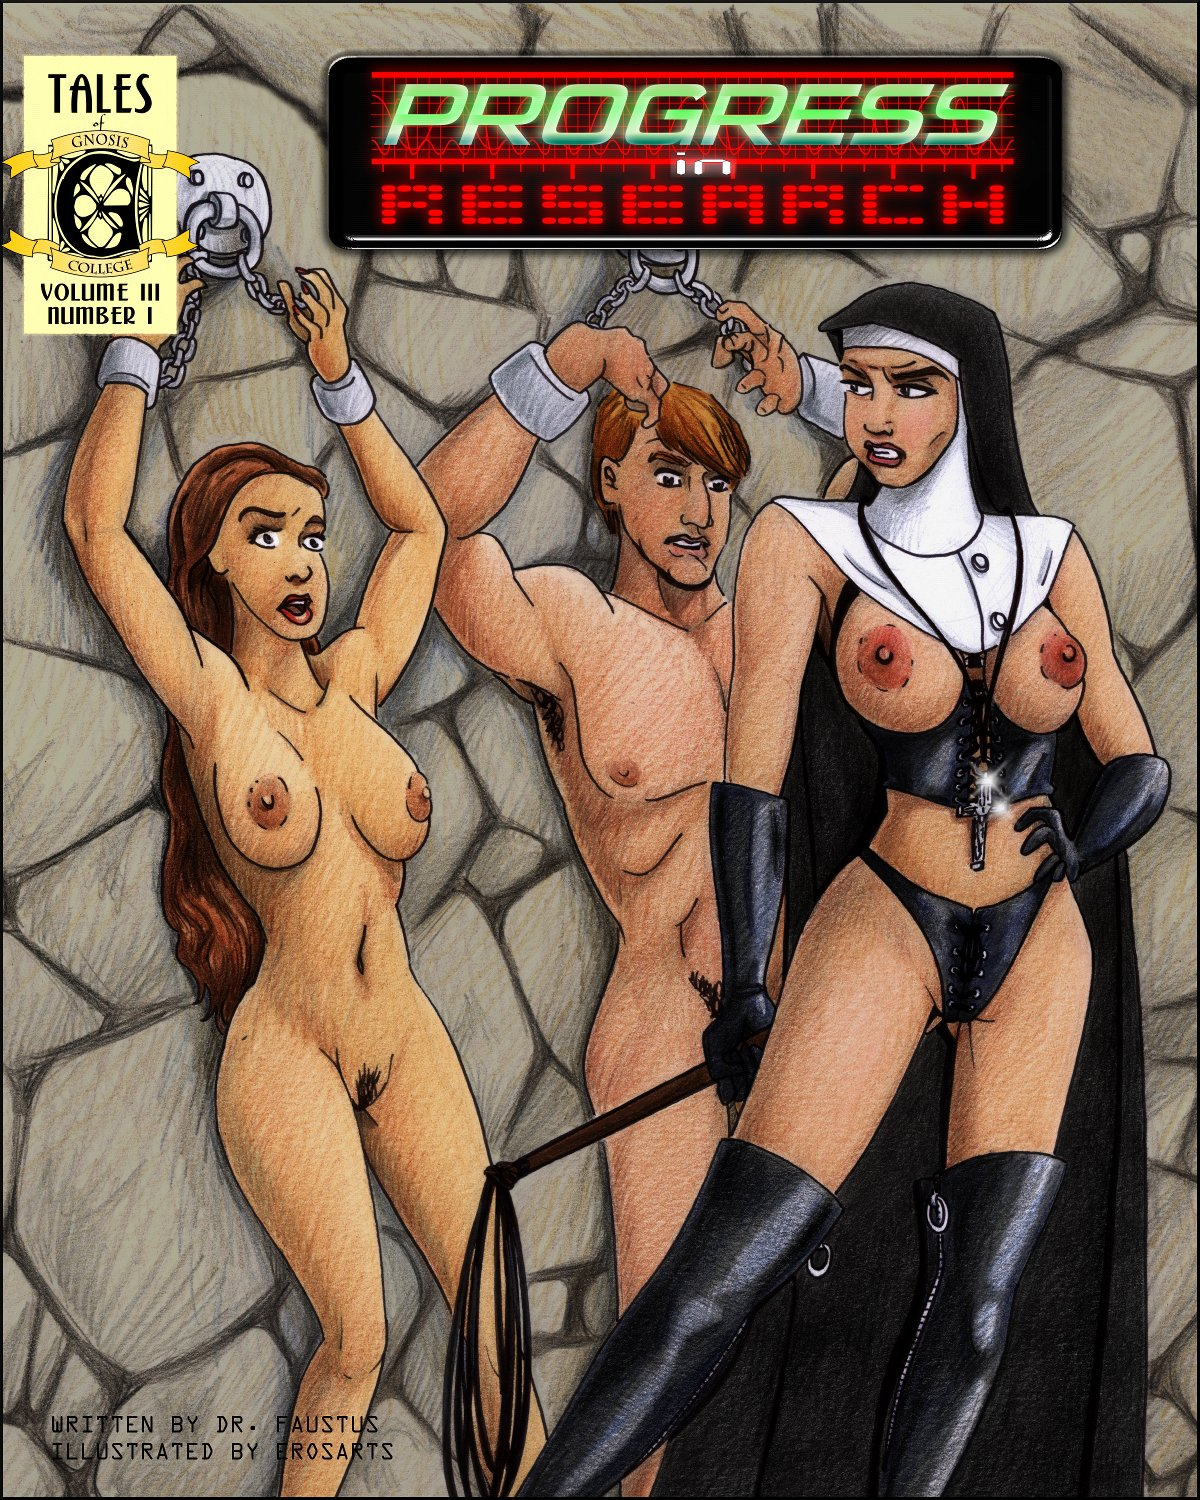 Two naked young people chained to a dungeon wall, dominated by a nun!